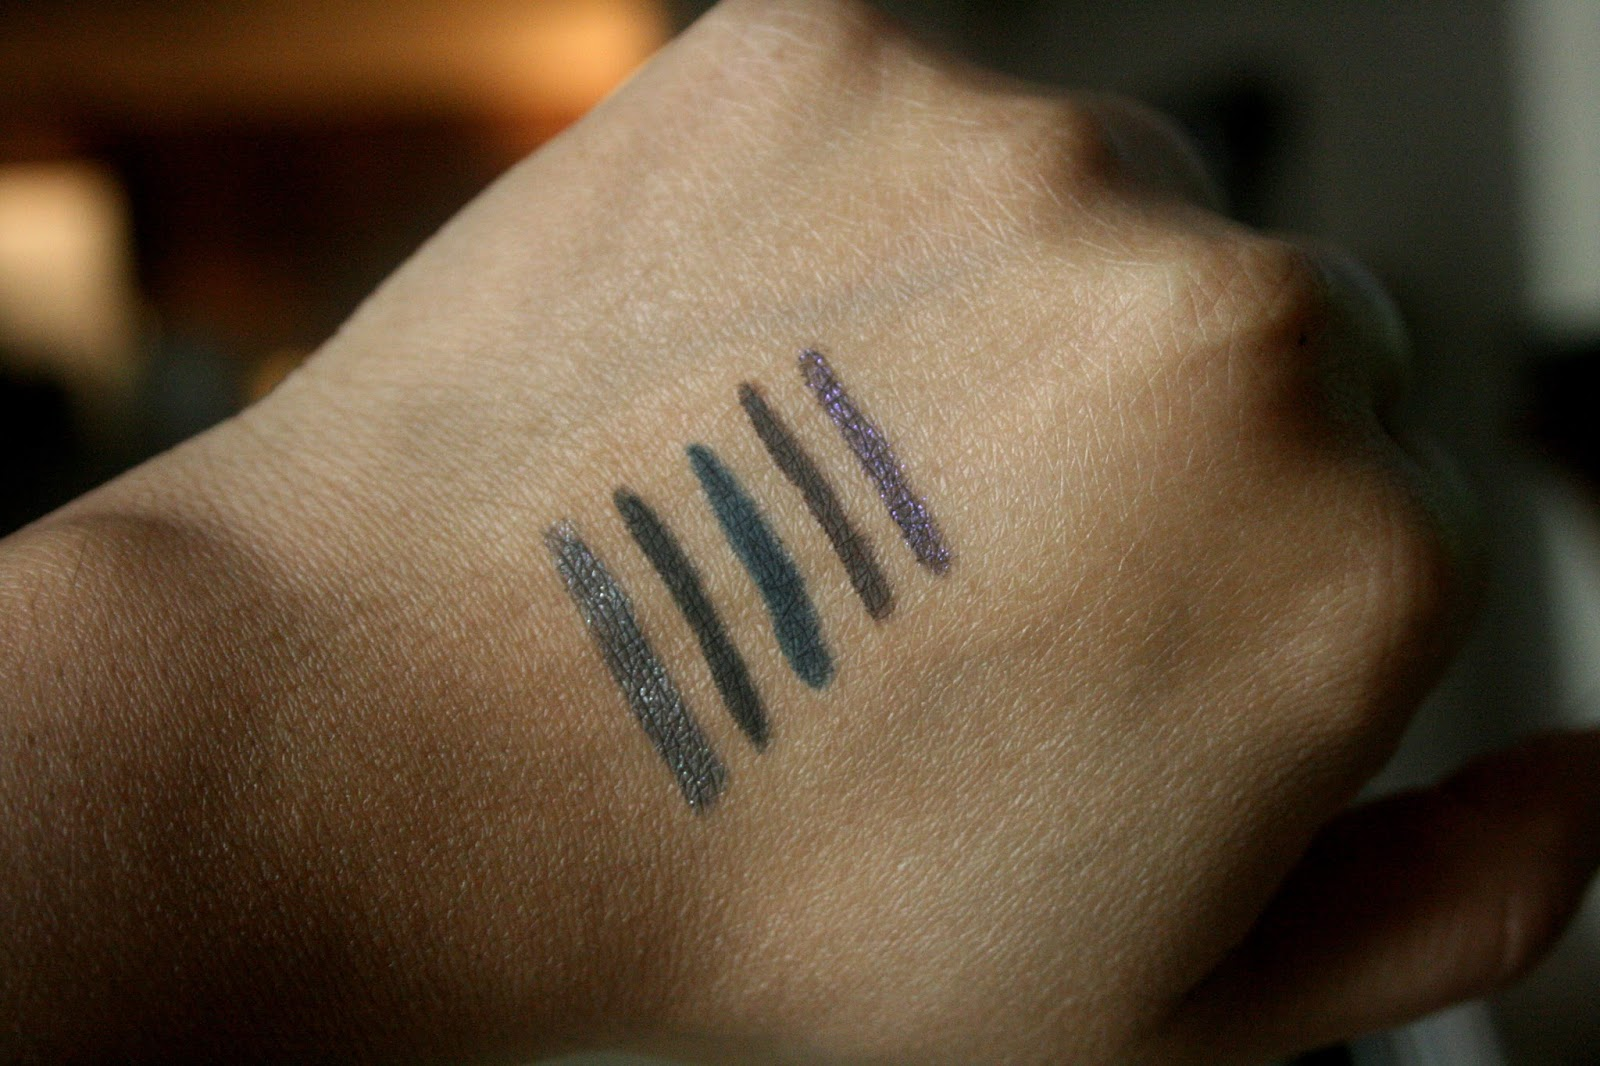 Smashbox On The Rocks Always Sharp Liner Set Smashbox Holiday 2014 Swatches of  3D Night Gem, Raven, Midnight,  Sumatra, 3D Orchid